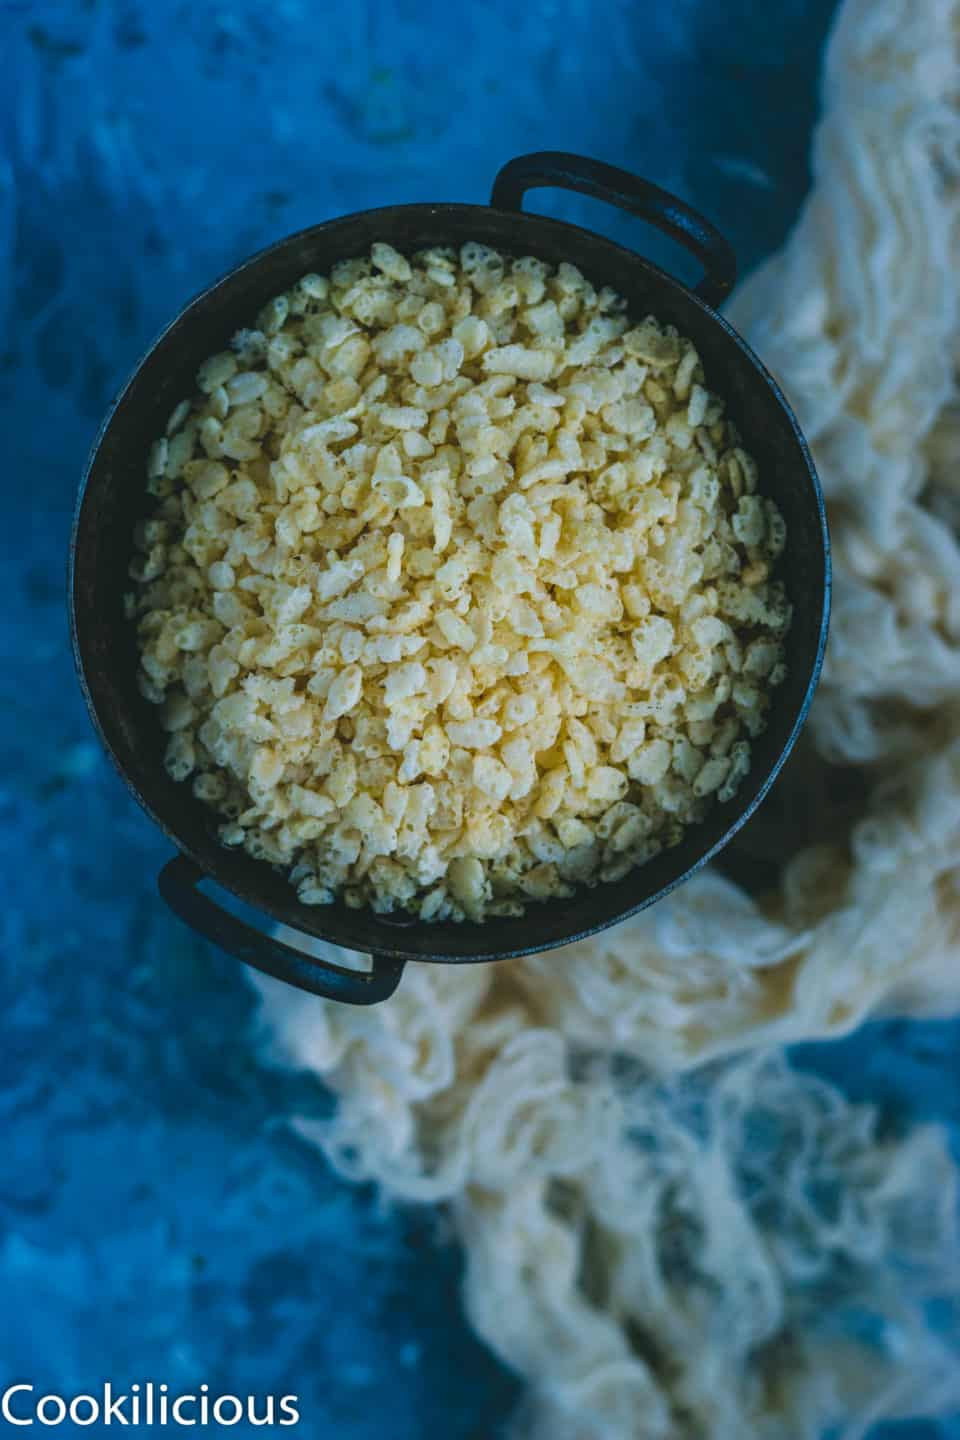 rice krispies in a kadai used to make Rice Krispie Chivda